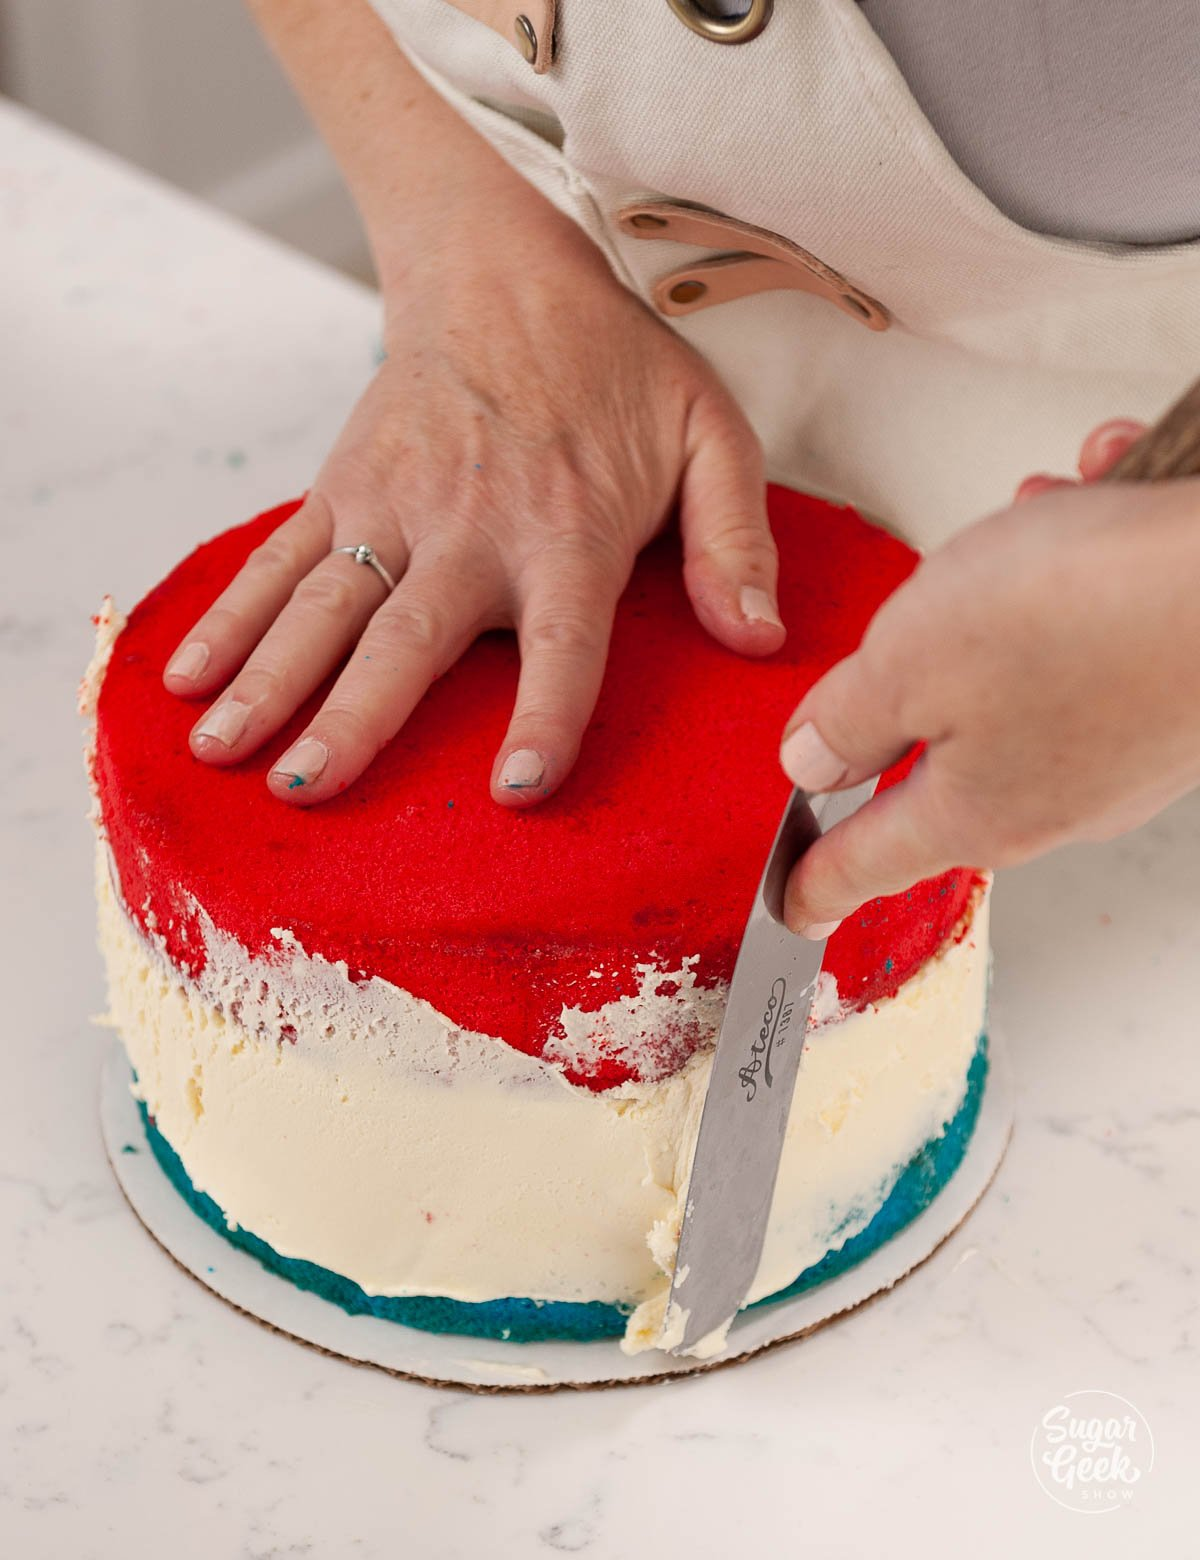 red cake layer on top of ice cream and blue cake layer